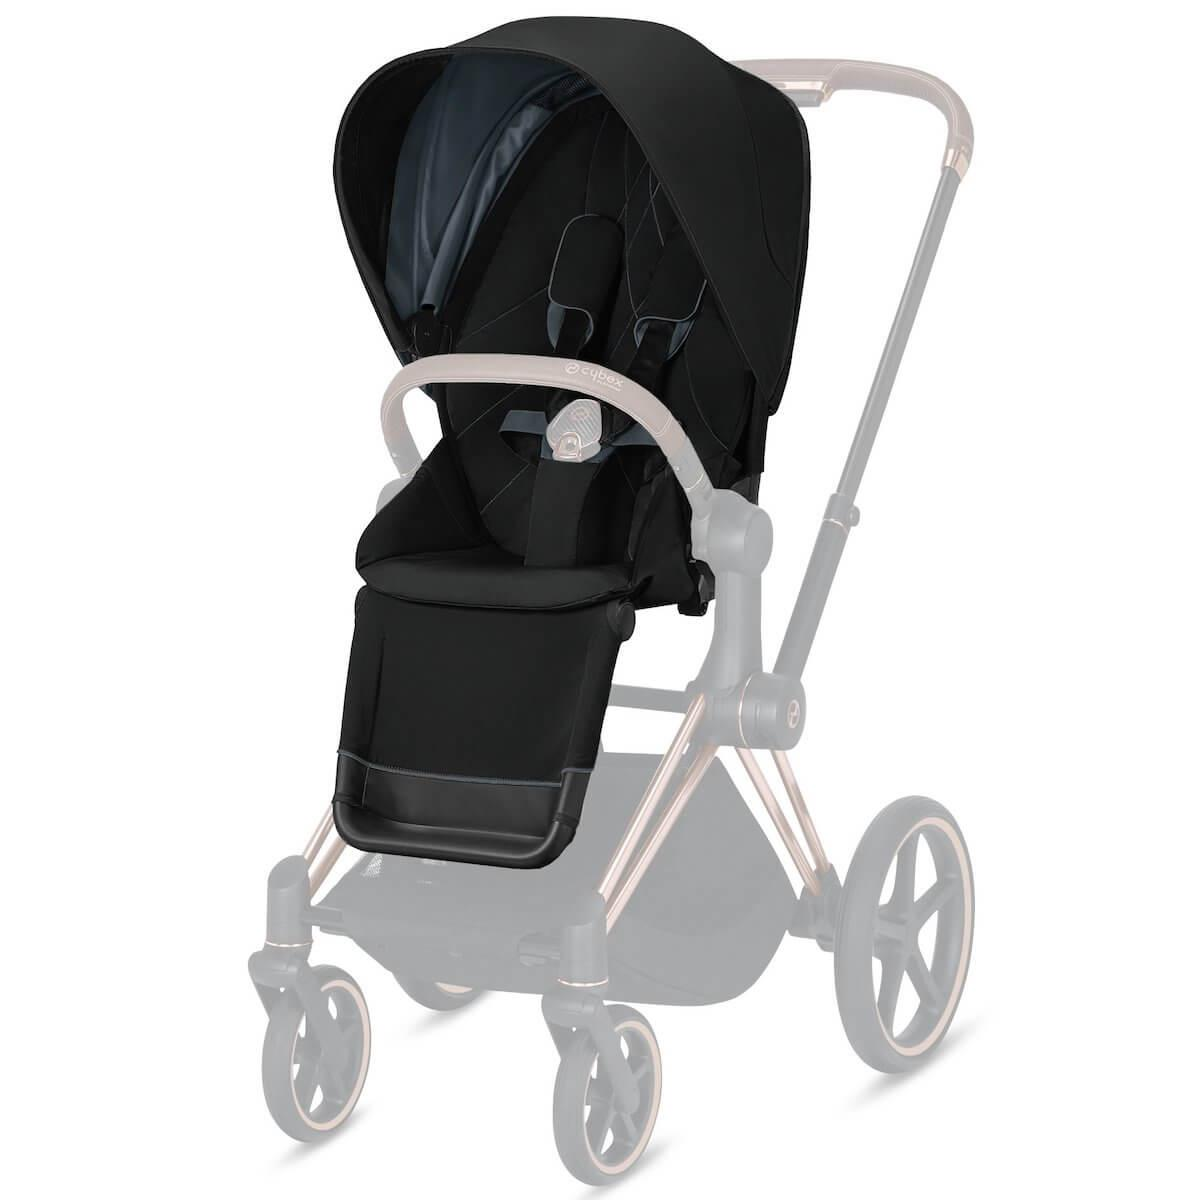 Assise-habillage poussette PRIAM Cybex deep black-black